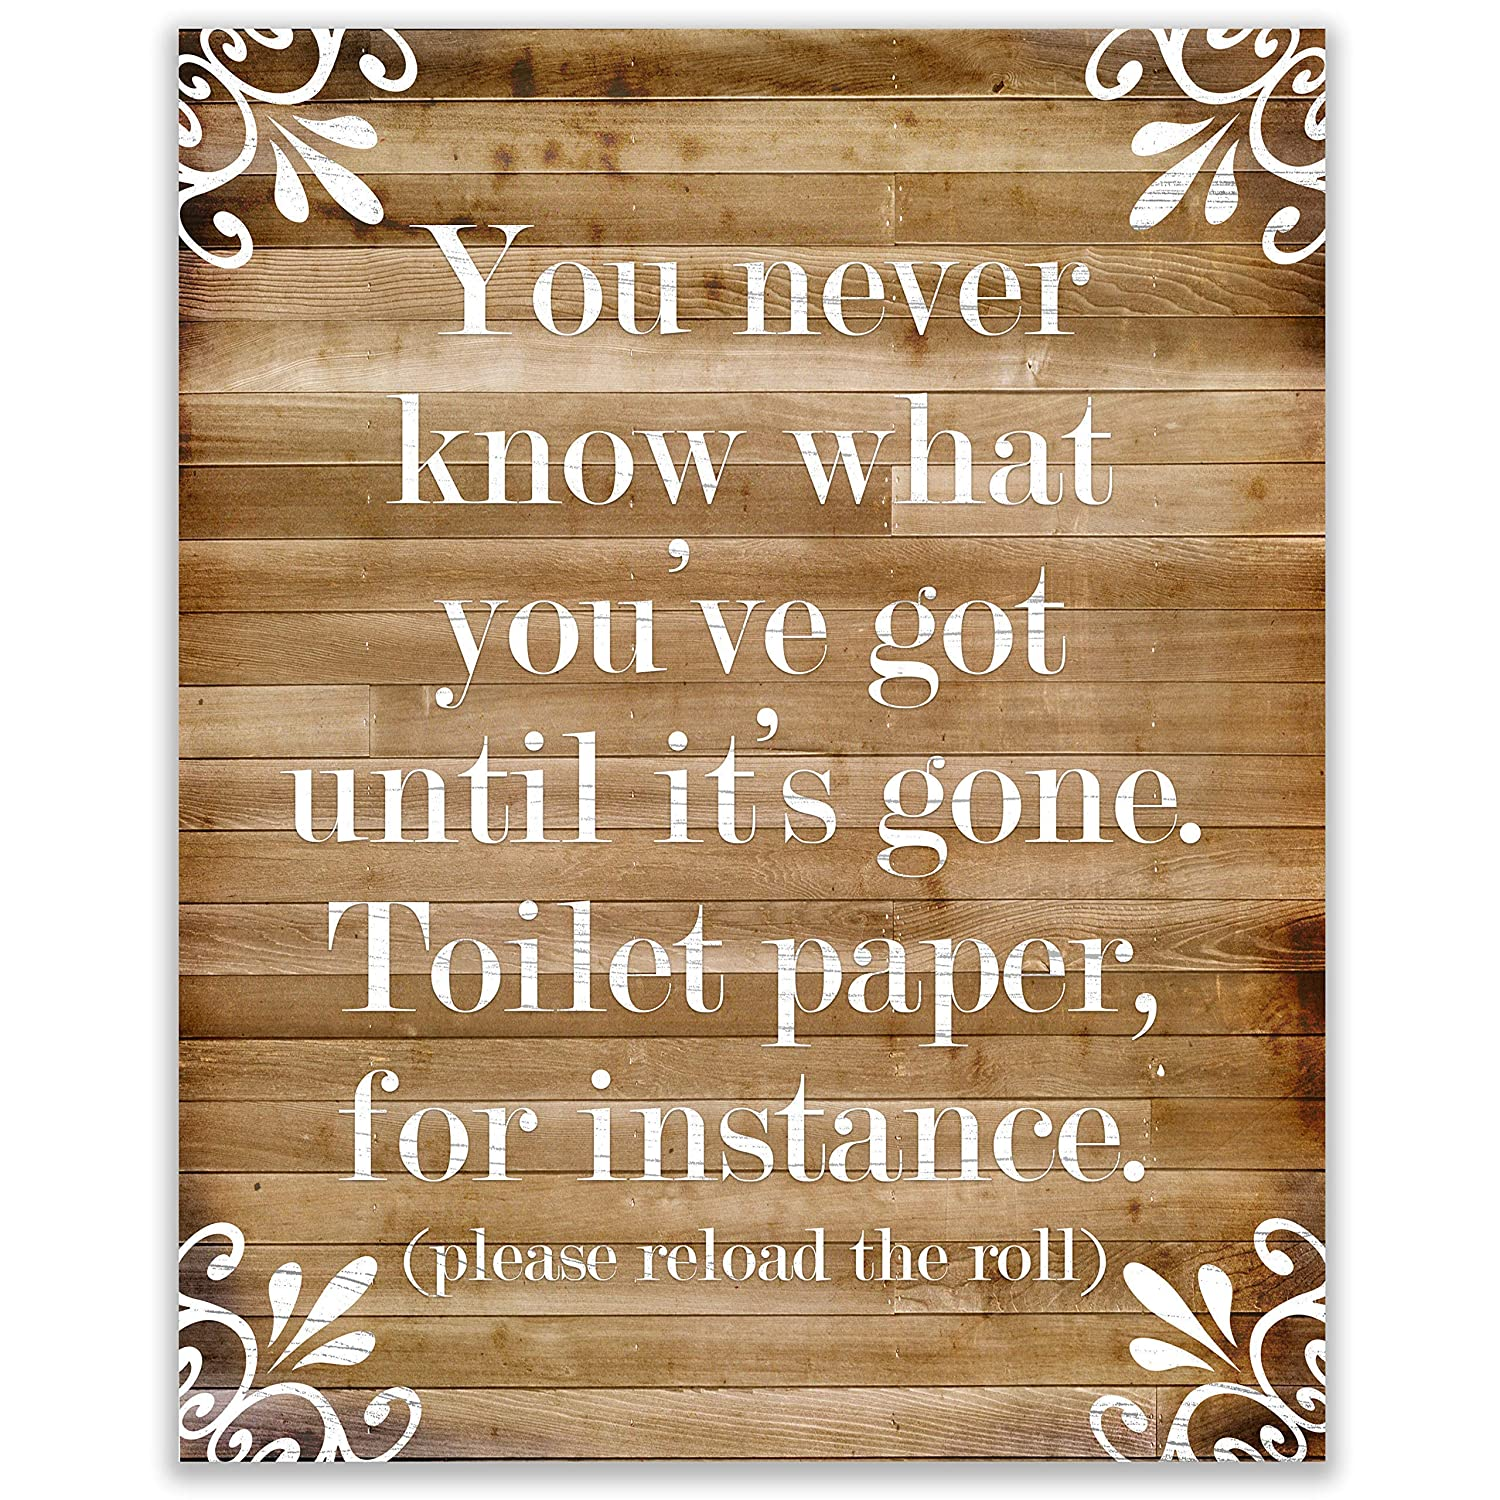 Rustic Farmhouse Bathroom Decor for the Wall - Funny Country Home Art Sign - Modern Farm House Bath Picture - Cabin Restroom Accent - Bathroom Art - Quote Wall Decor - 8x10 UNFRAMED (You Never Know)